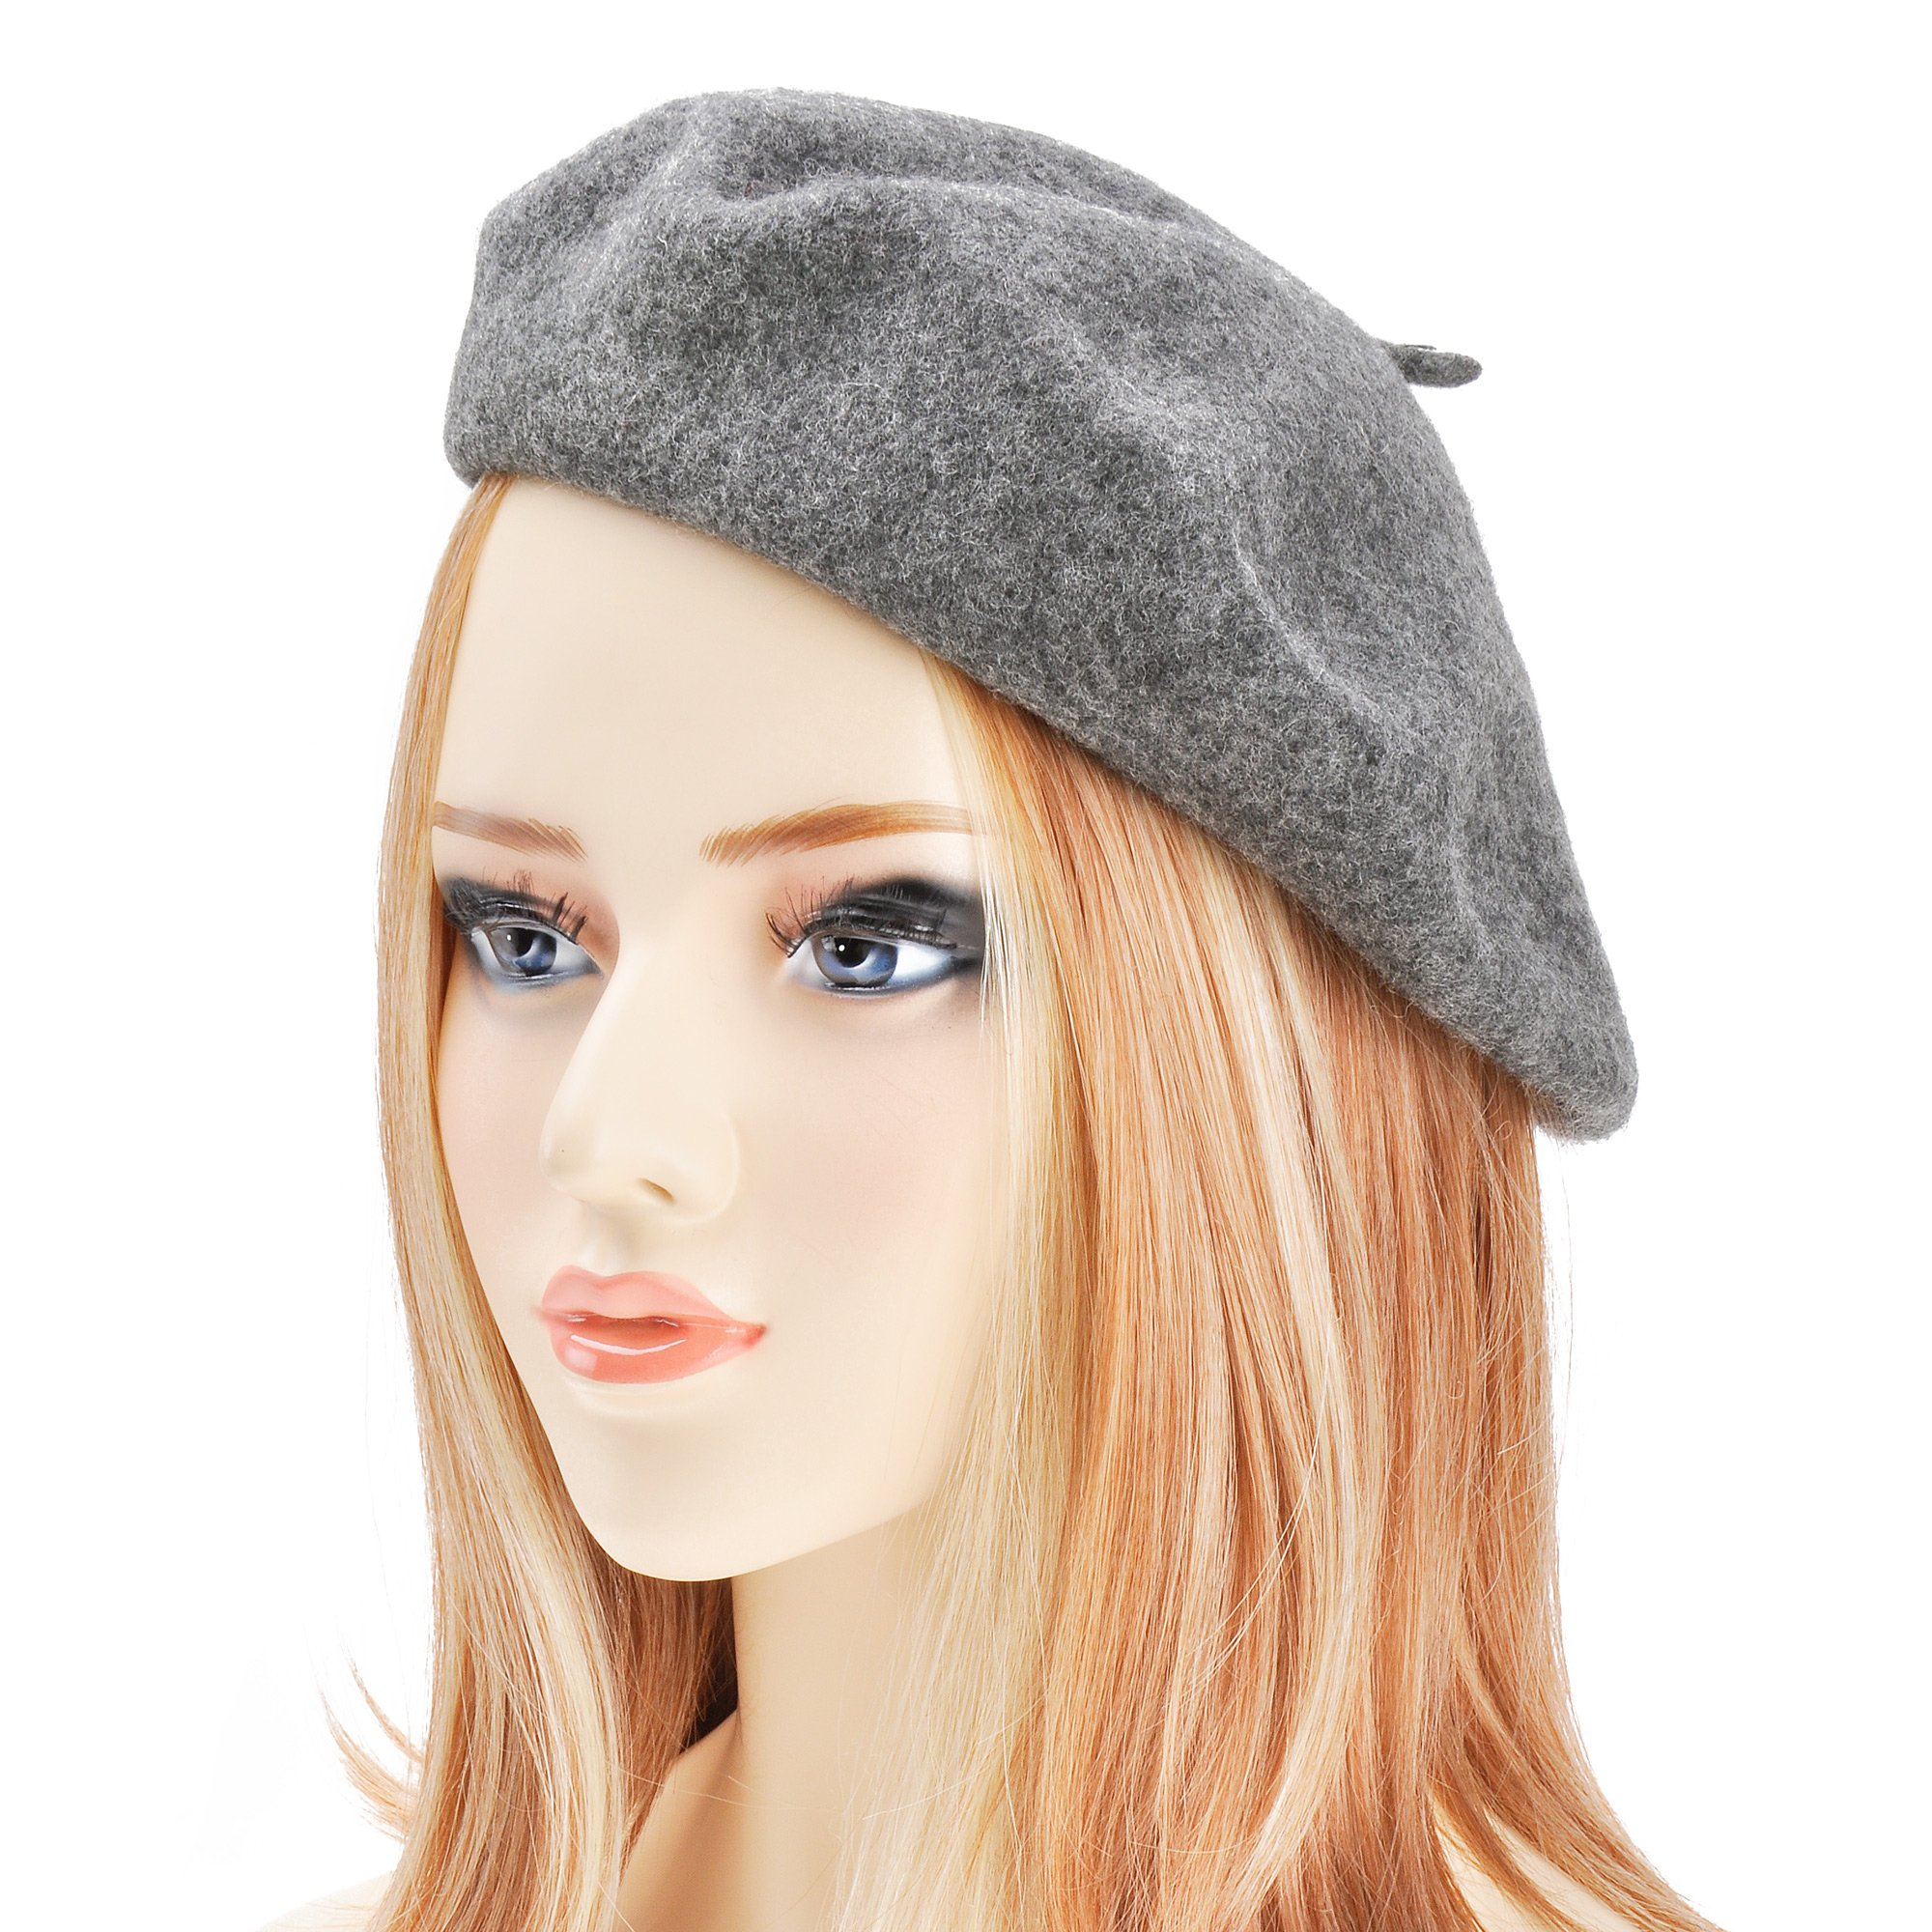 ZLYC Wool Beret Hat Classic Solid Color French Beret for Women (Melange Grey)